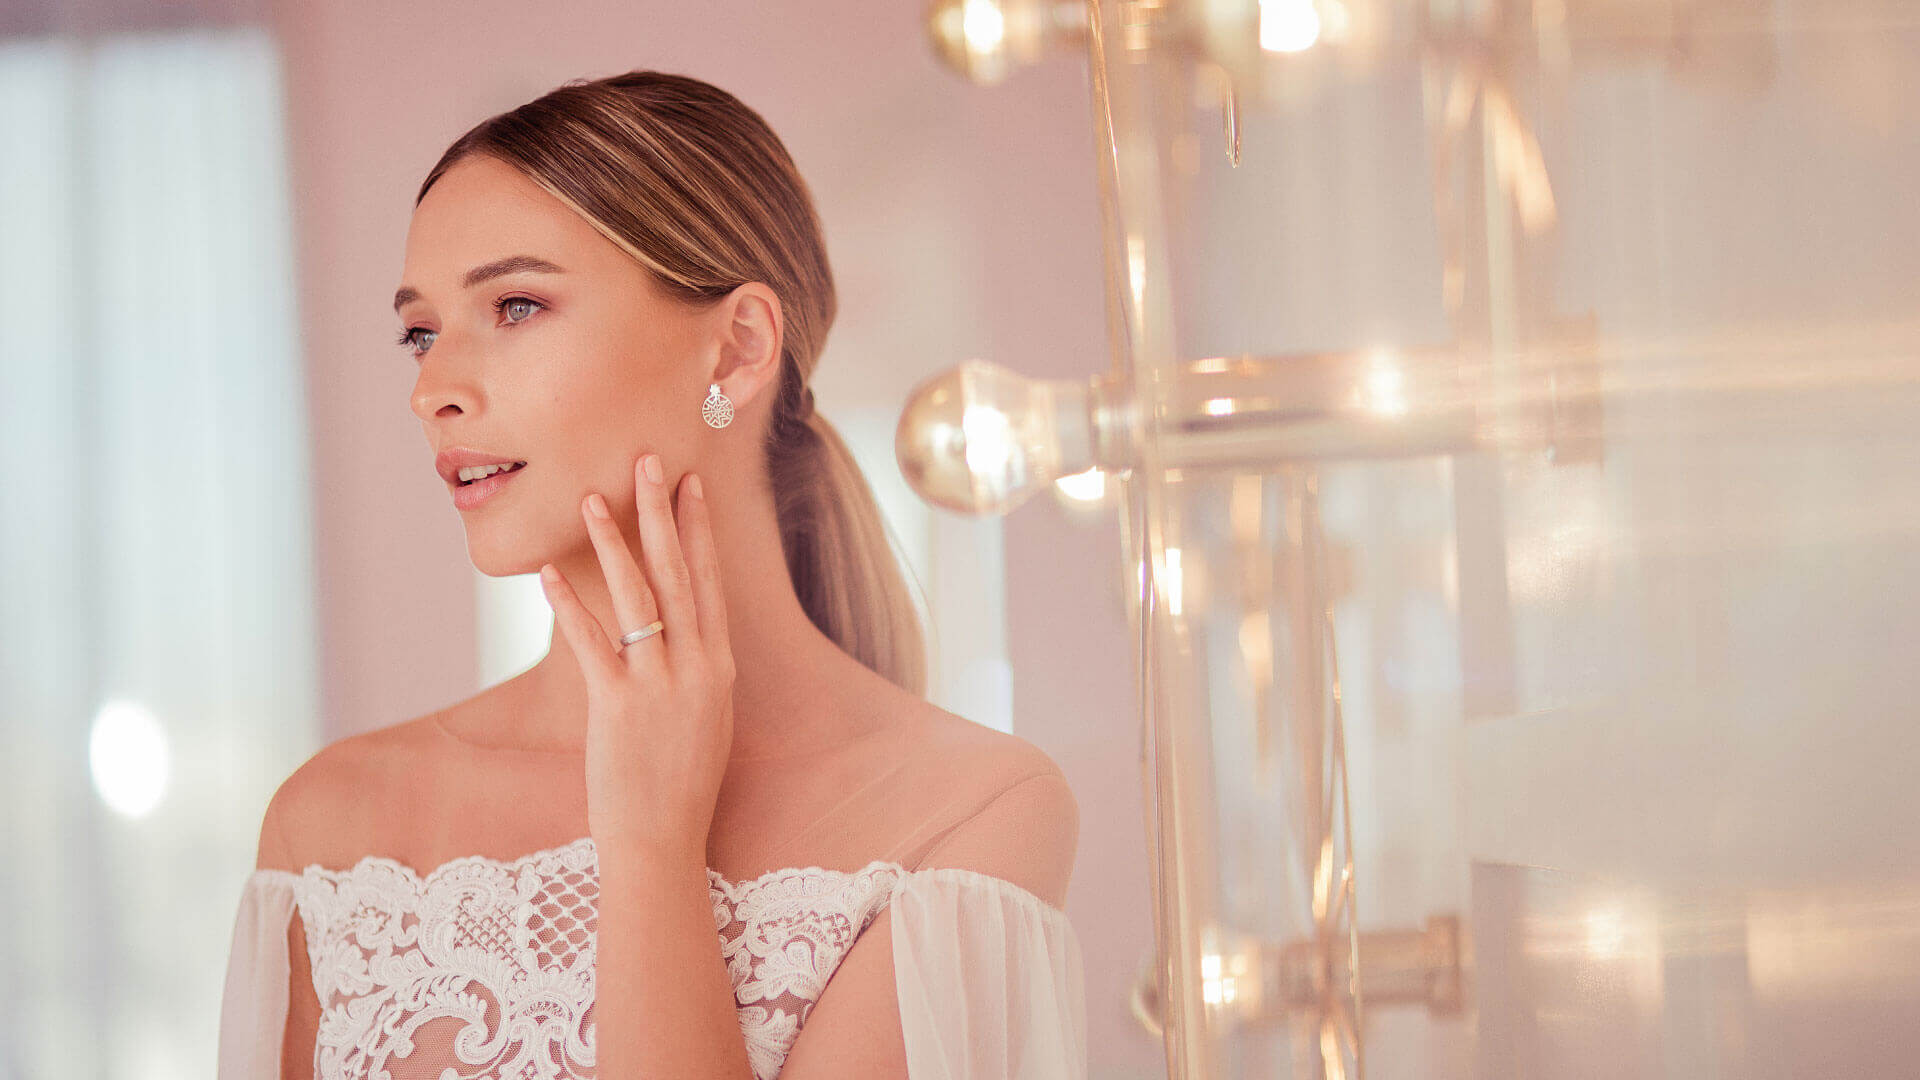 Bride to be: Stilul care te reprezinta